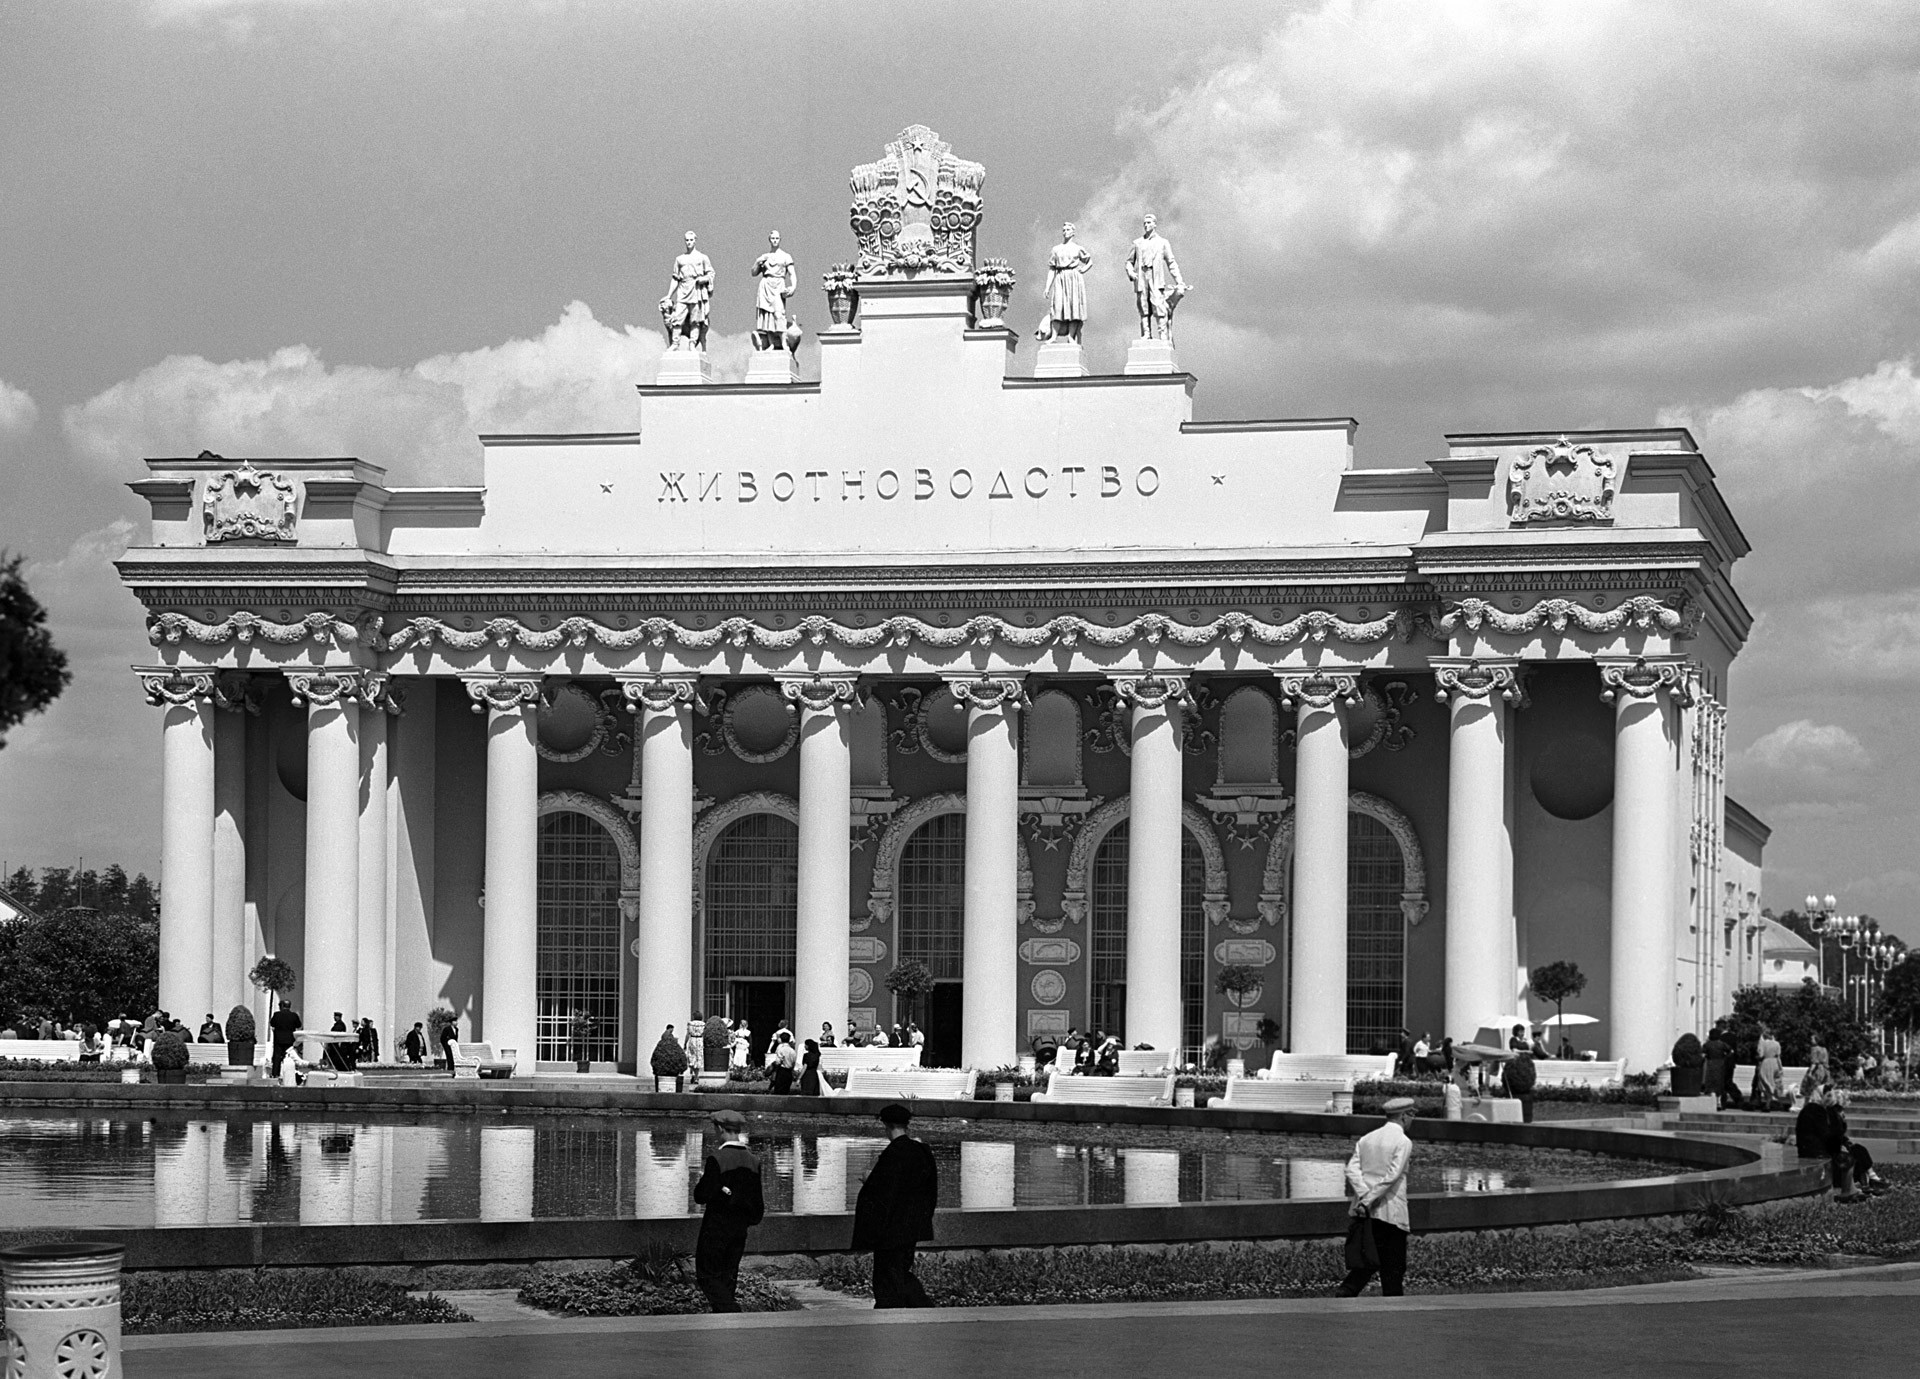 General view of the Animal Breeding Pavilion at Moscow's VDNKh All-Union Agricultural Exhibition Center.